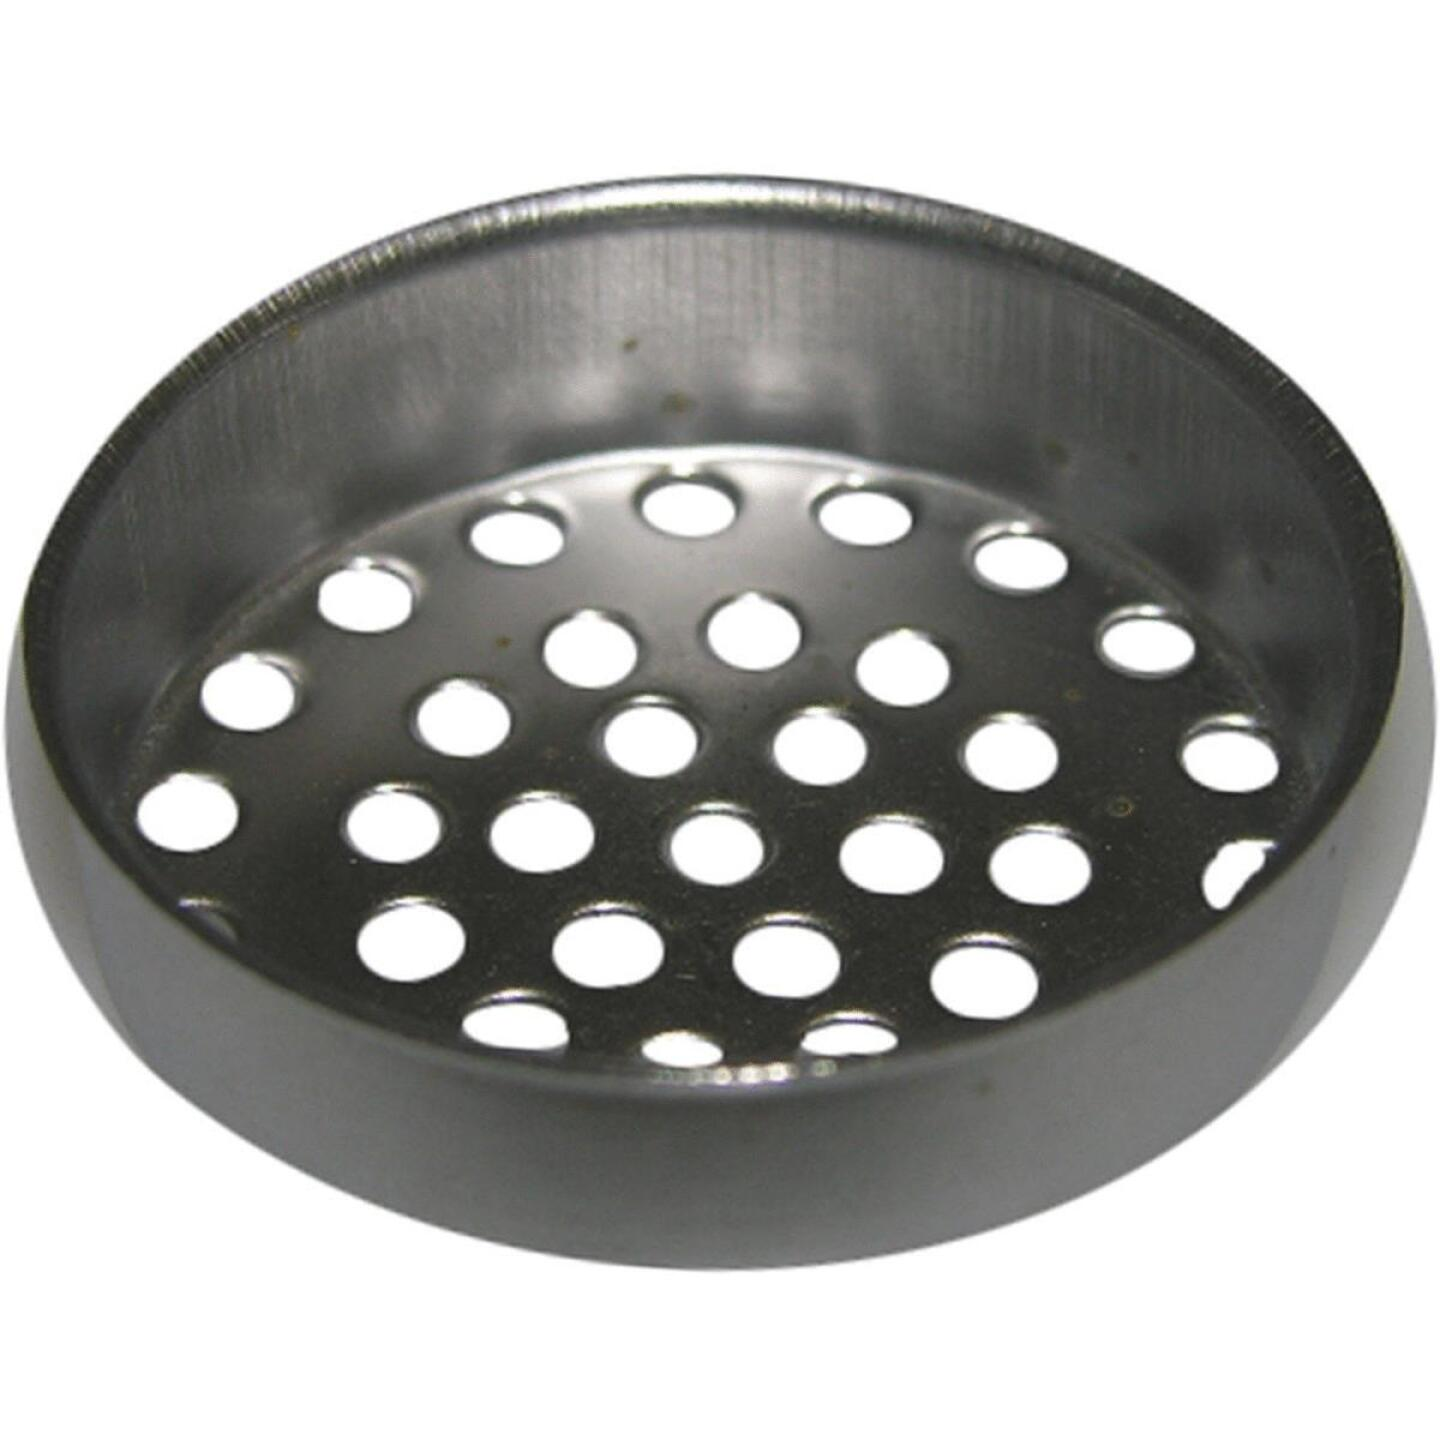 Lasco 1-1/2 In. Chrome Removable Laundry Tray Strainer Cup Image 1